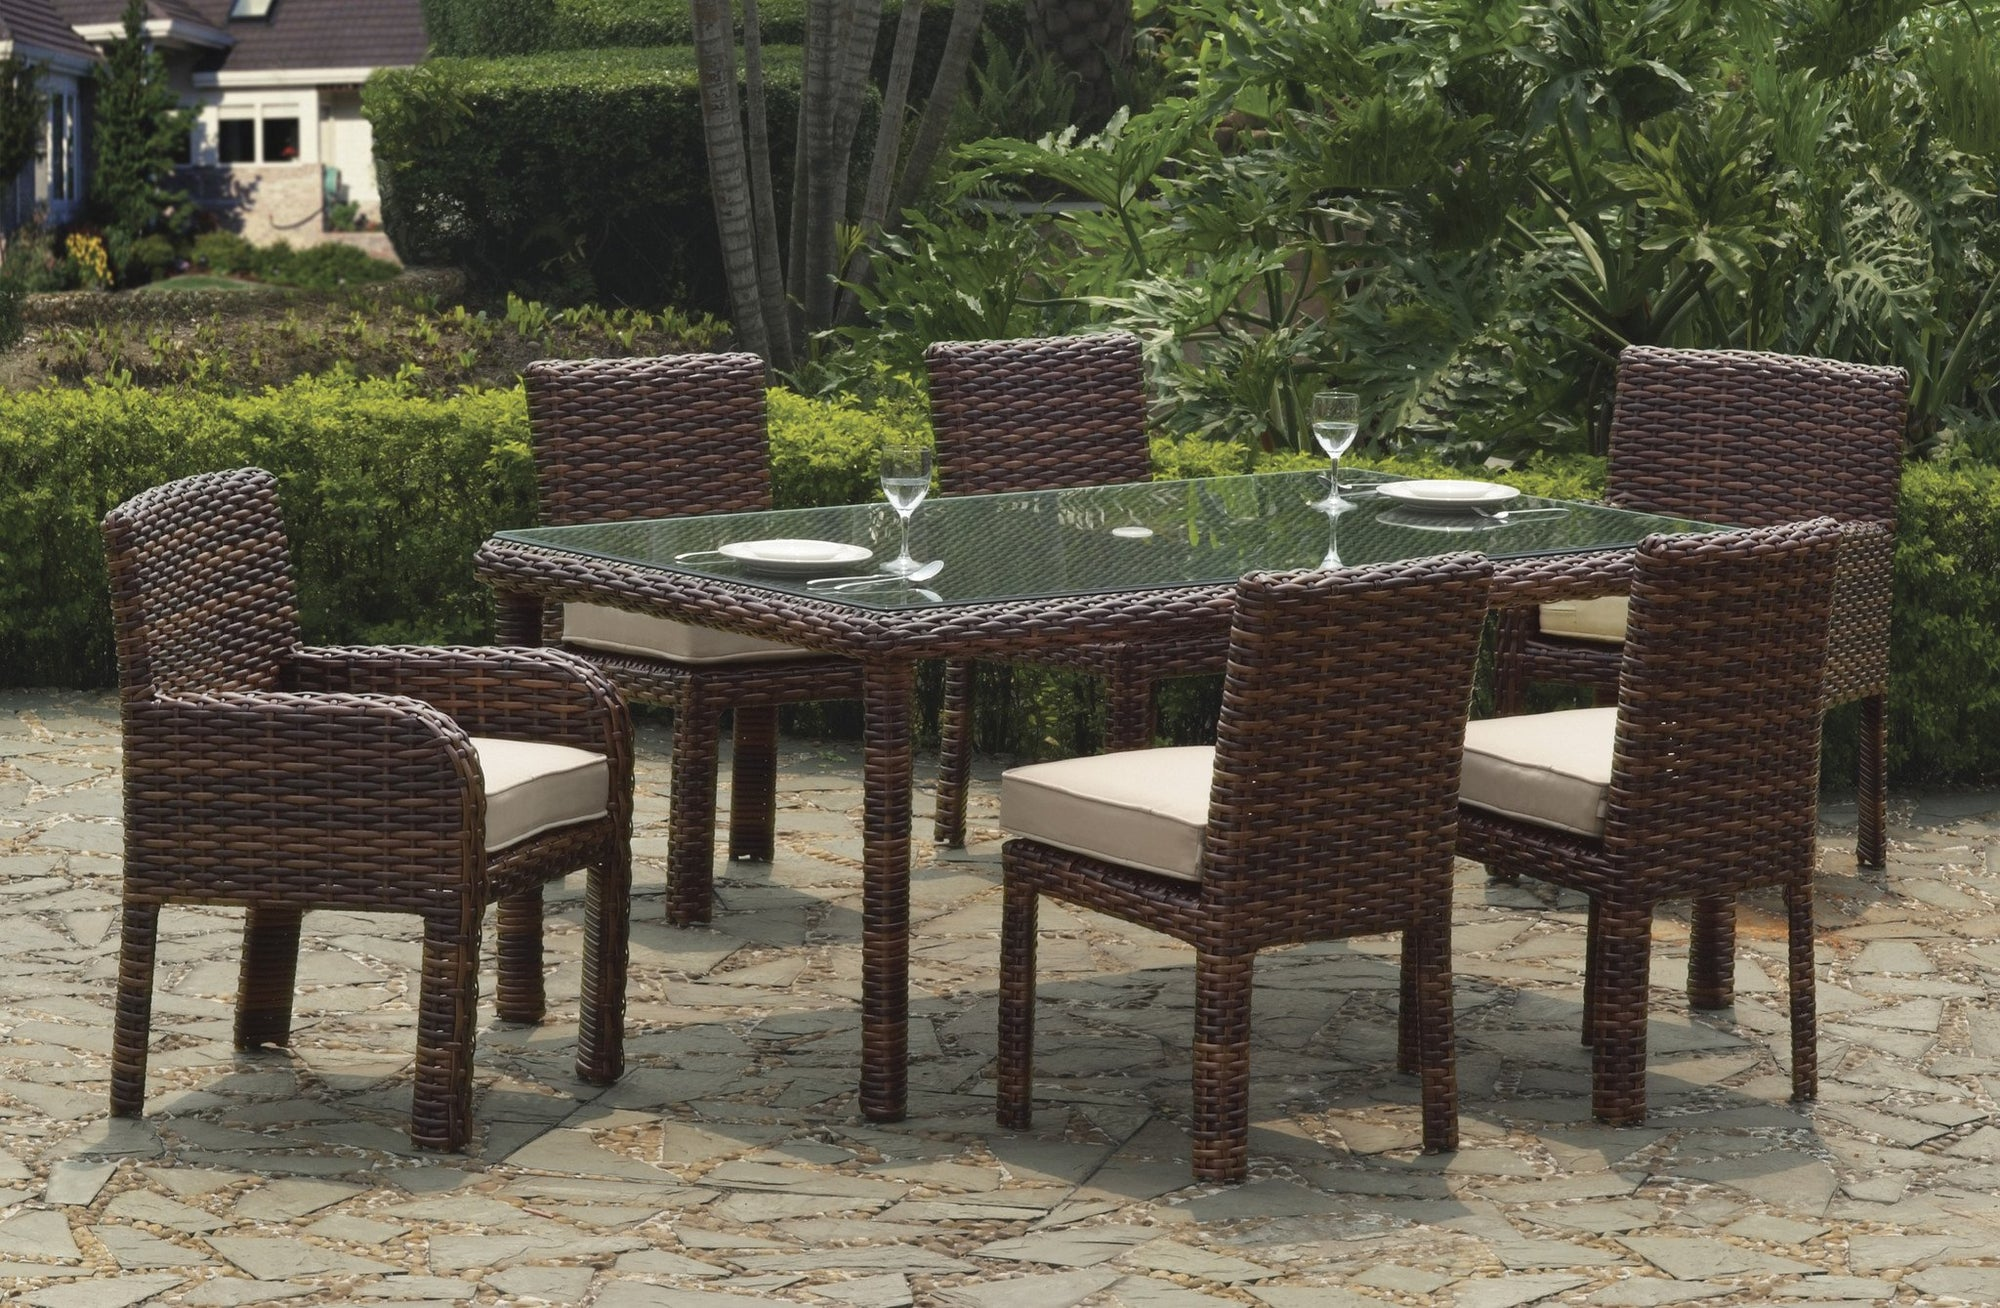 South Sea Rattan South Sea Rattan St. Tropez 7-Piece Rectangular Dining Set Dining Set - Rattan Imports